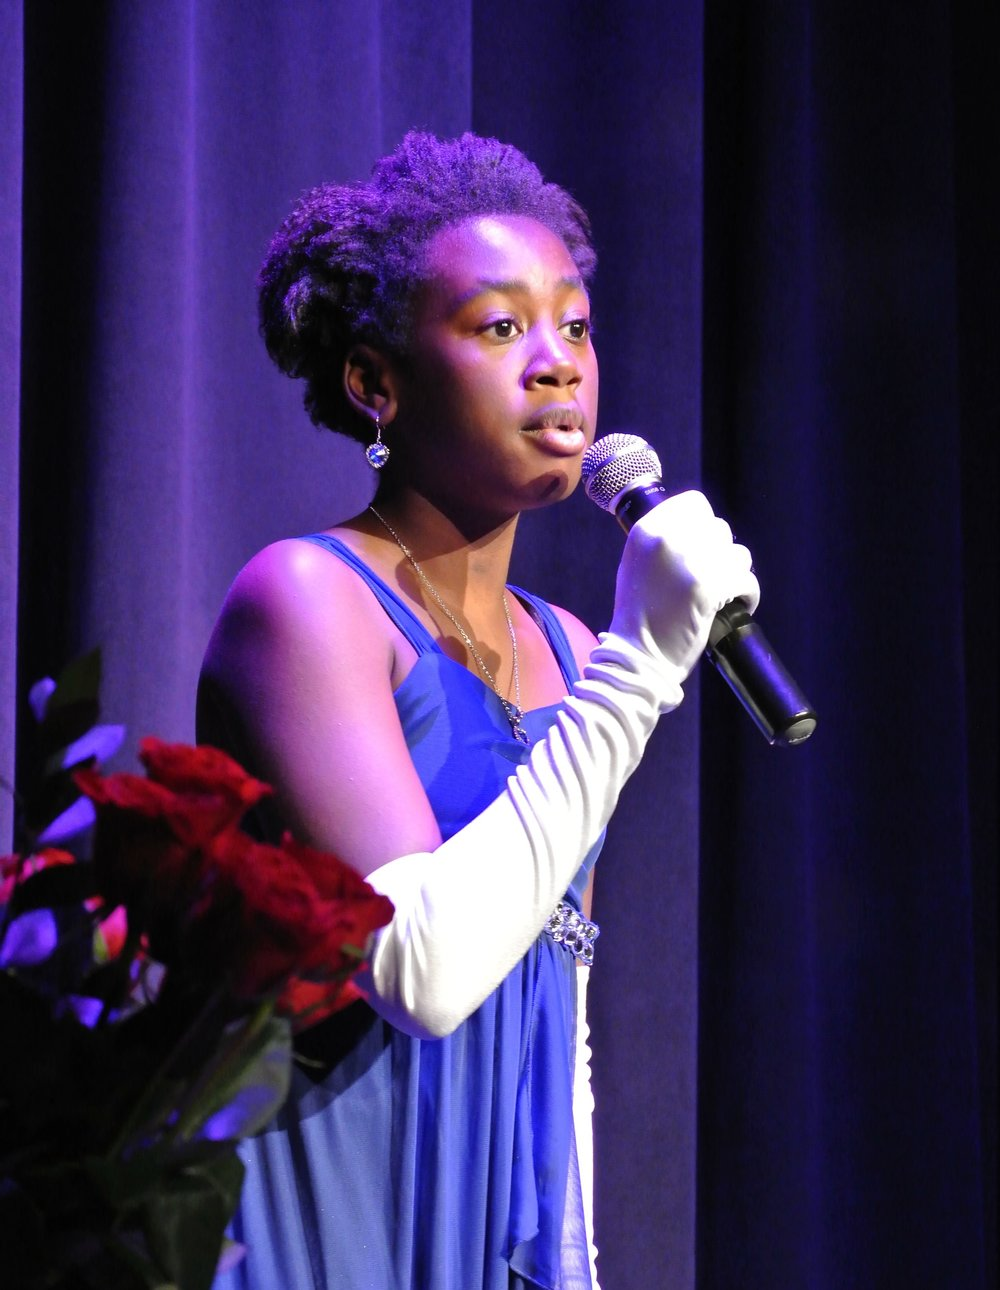 A Lundstrum student performs her solo at the Coffee House Cabaret.